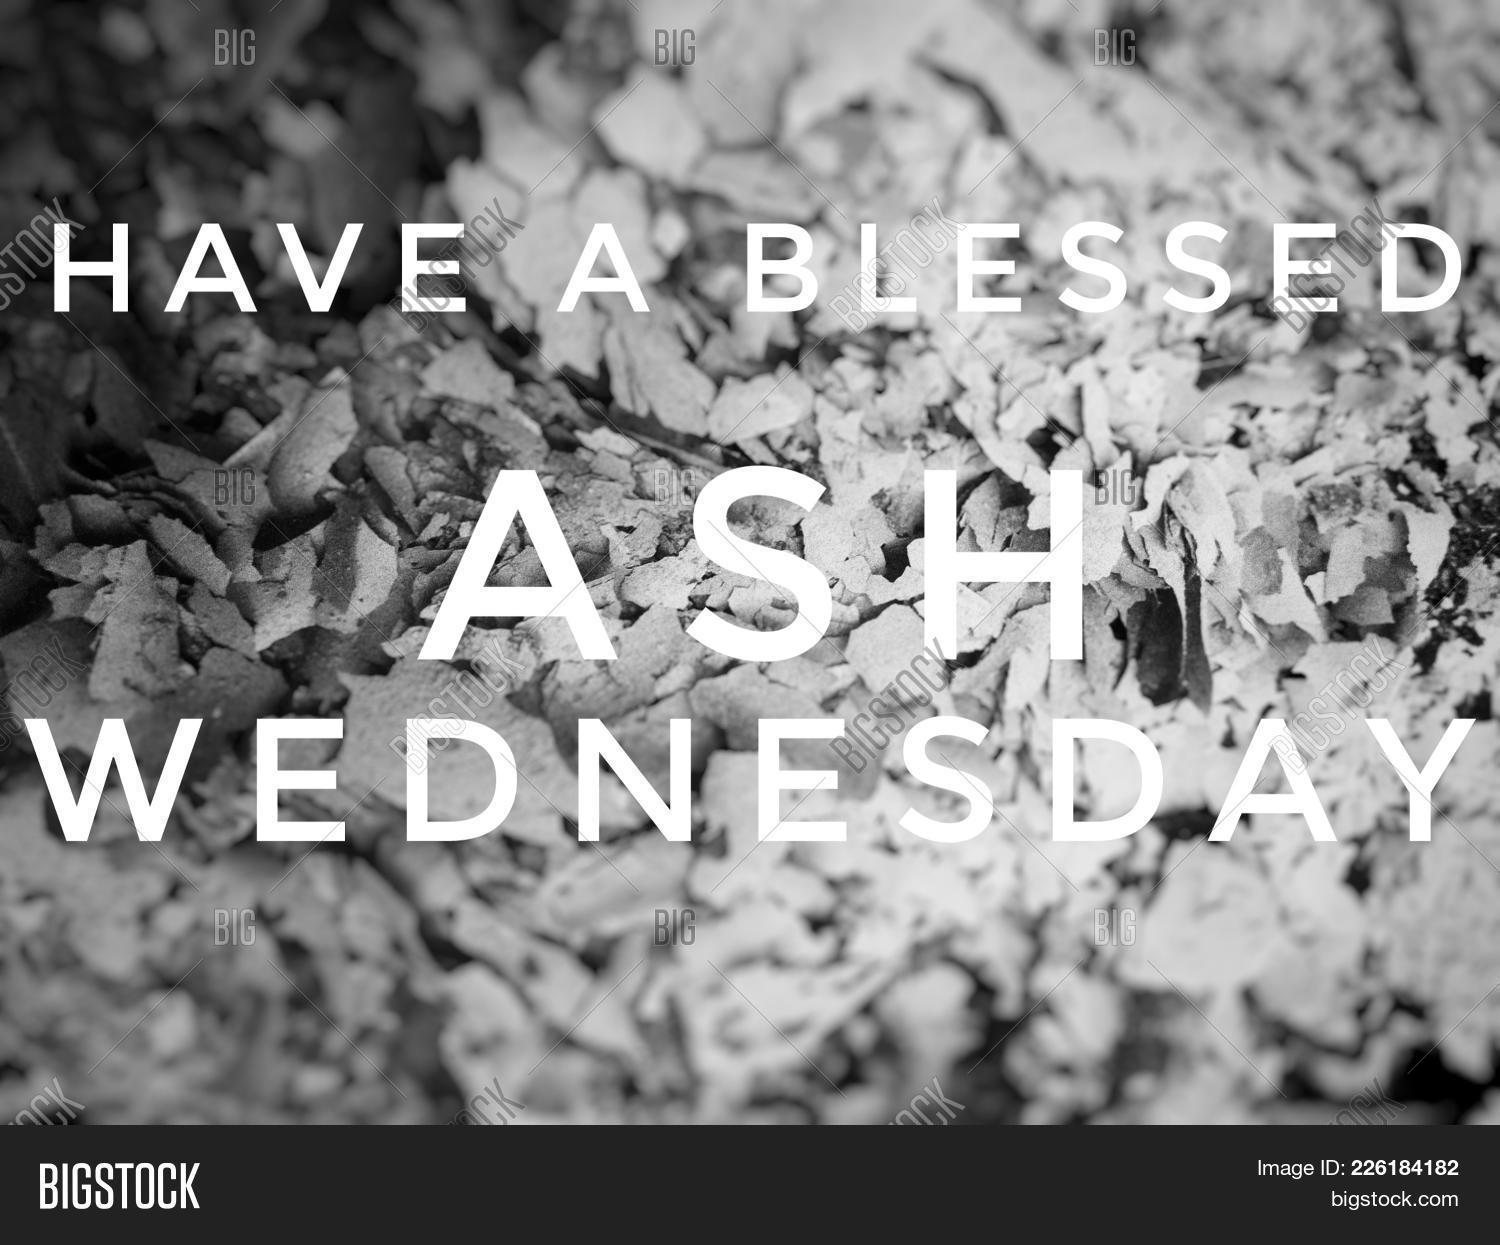 Greeting blessed ash image photo free trial bigstock greeting for the blessed ash wednesday celebration an event that roman catholic church all over m4hsunfo